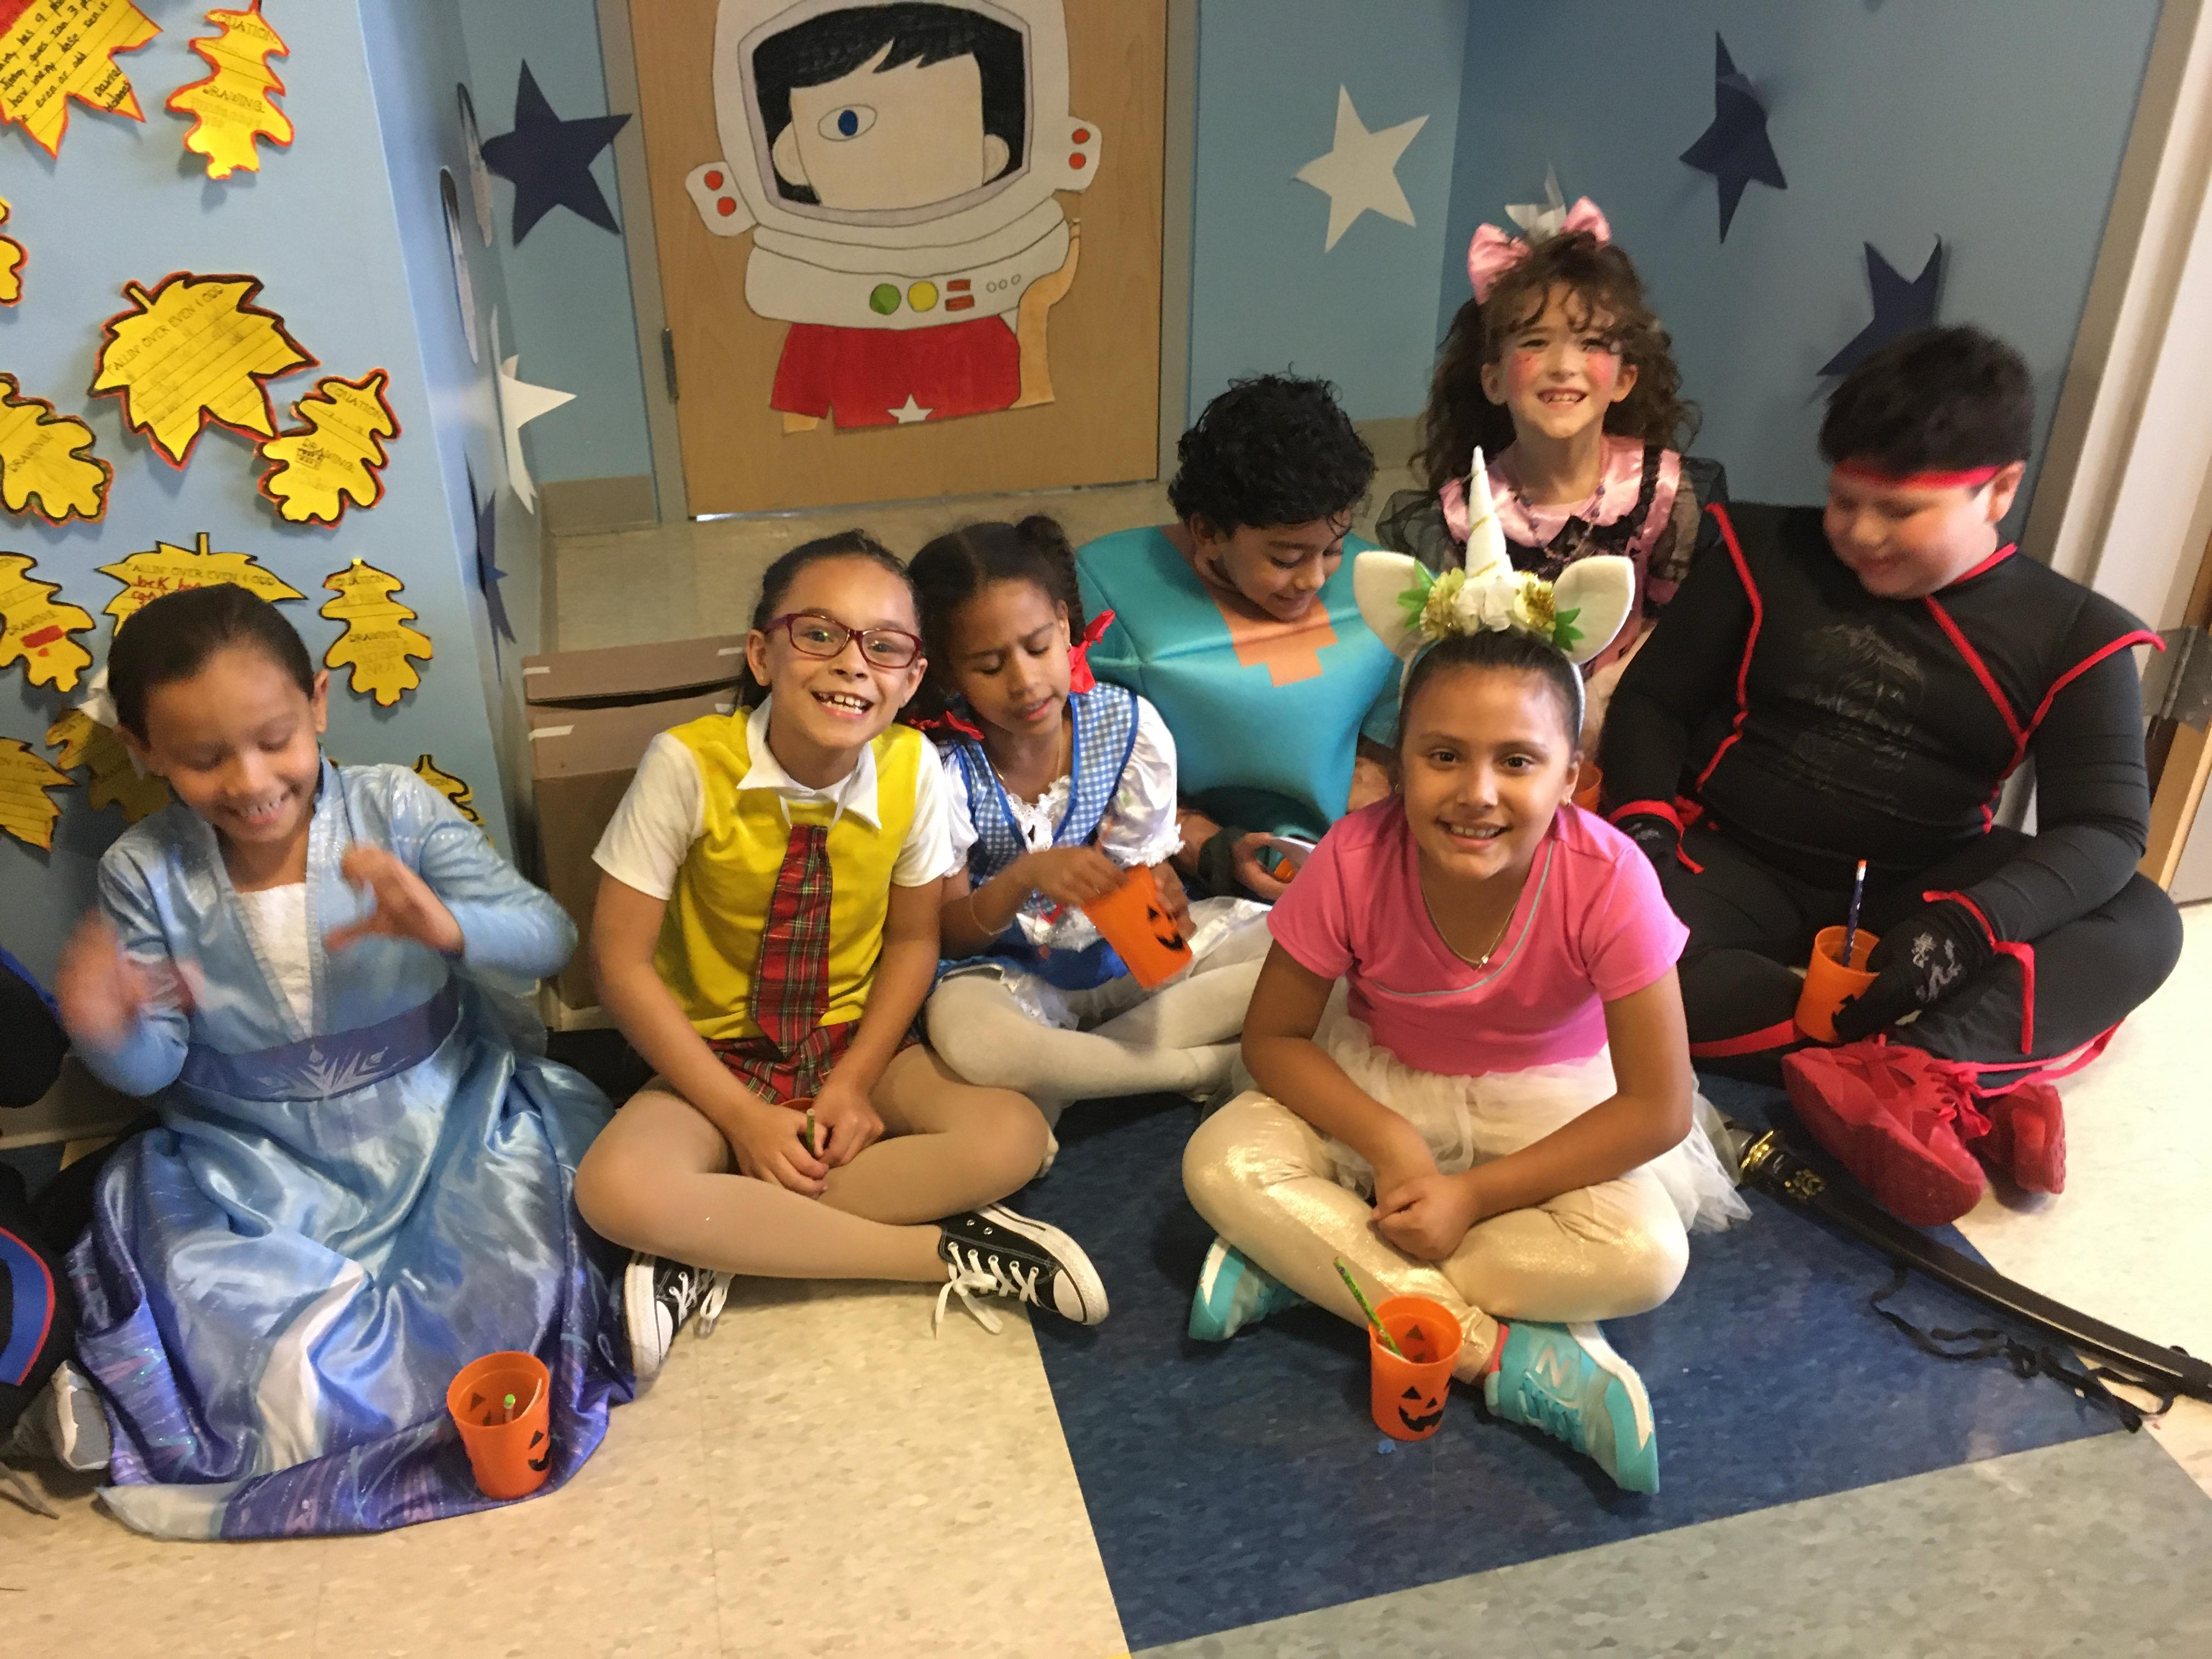 group of kids sitting on hallway floor in their costumes